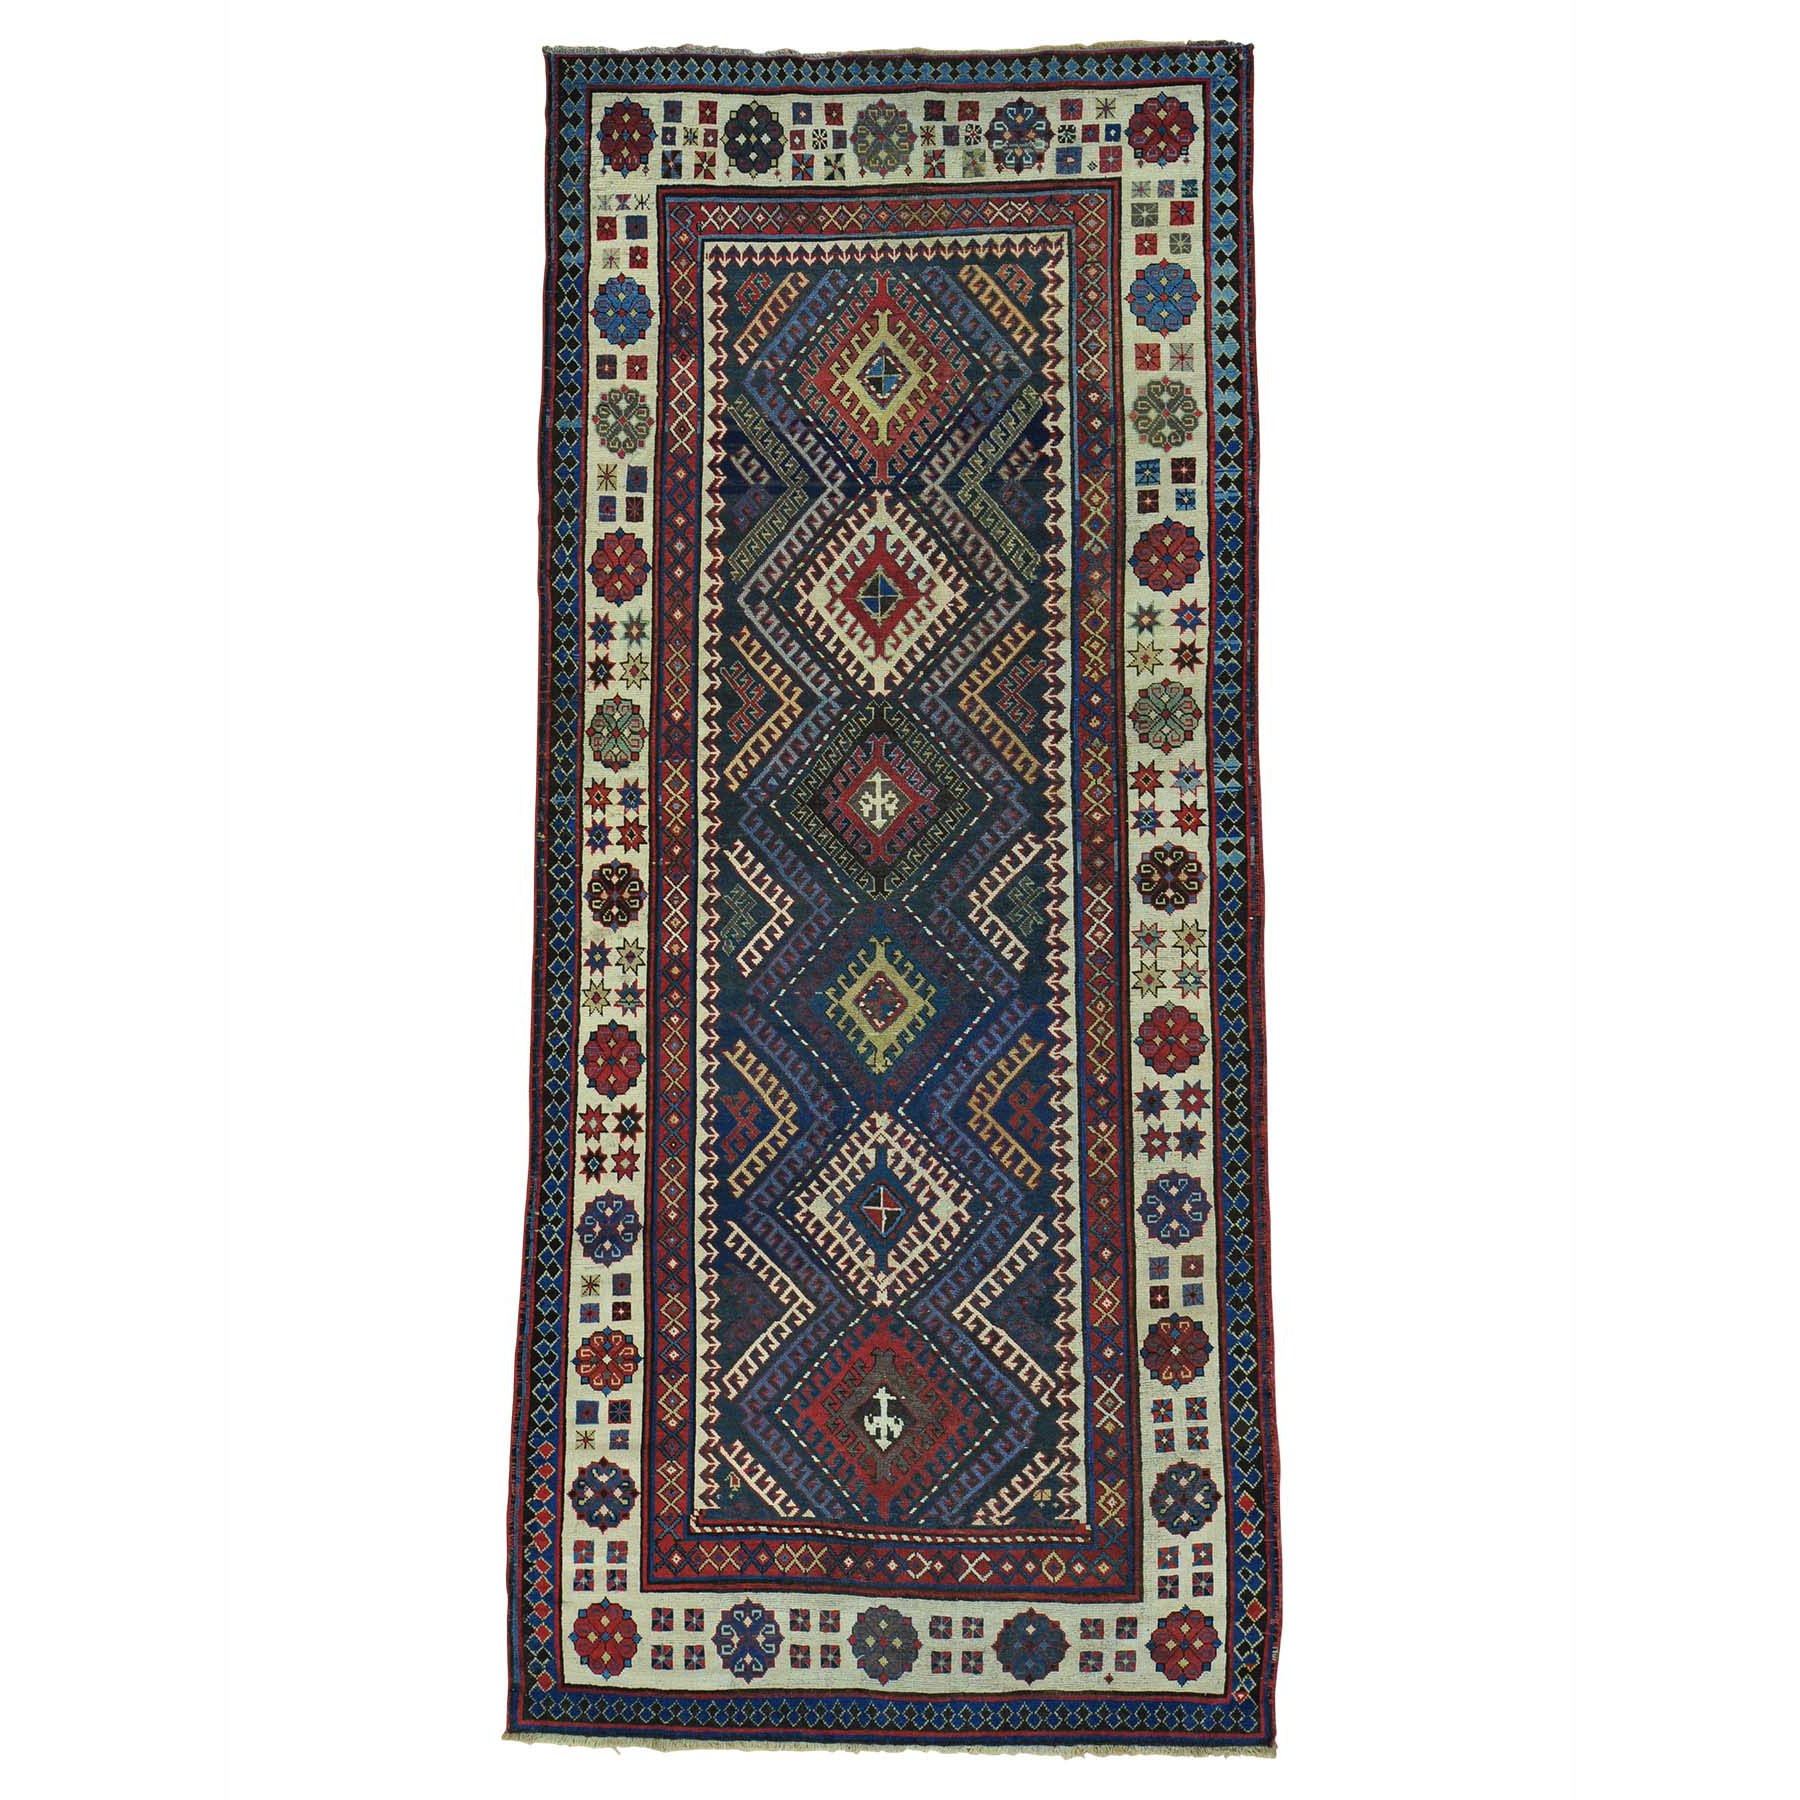 4'X9' Antique Caucasian Talesh Exc Cond Wide Runner Hand Knotted Rug moab8bb8